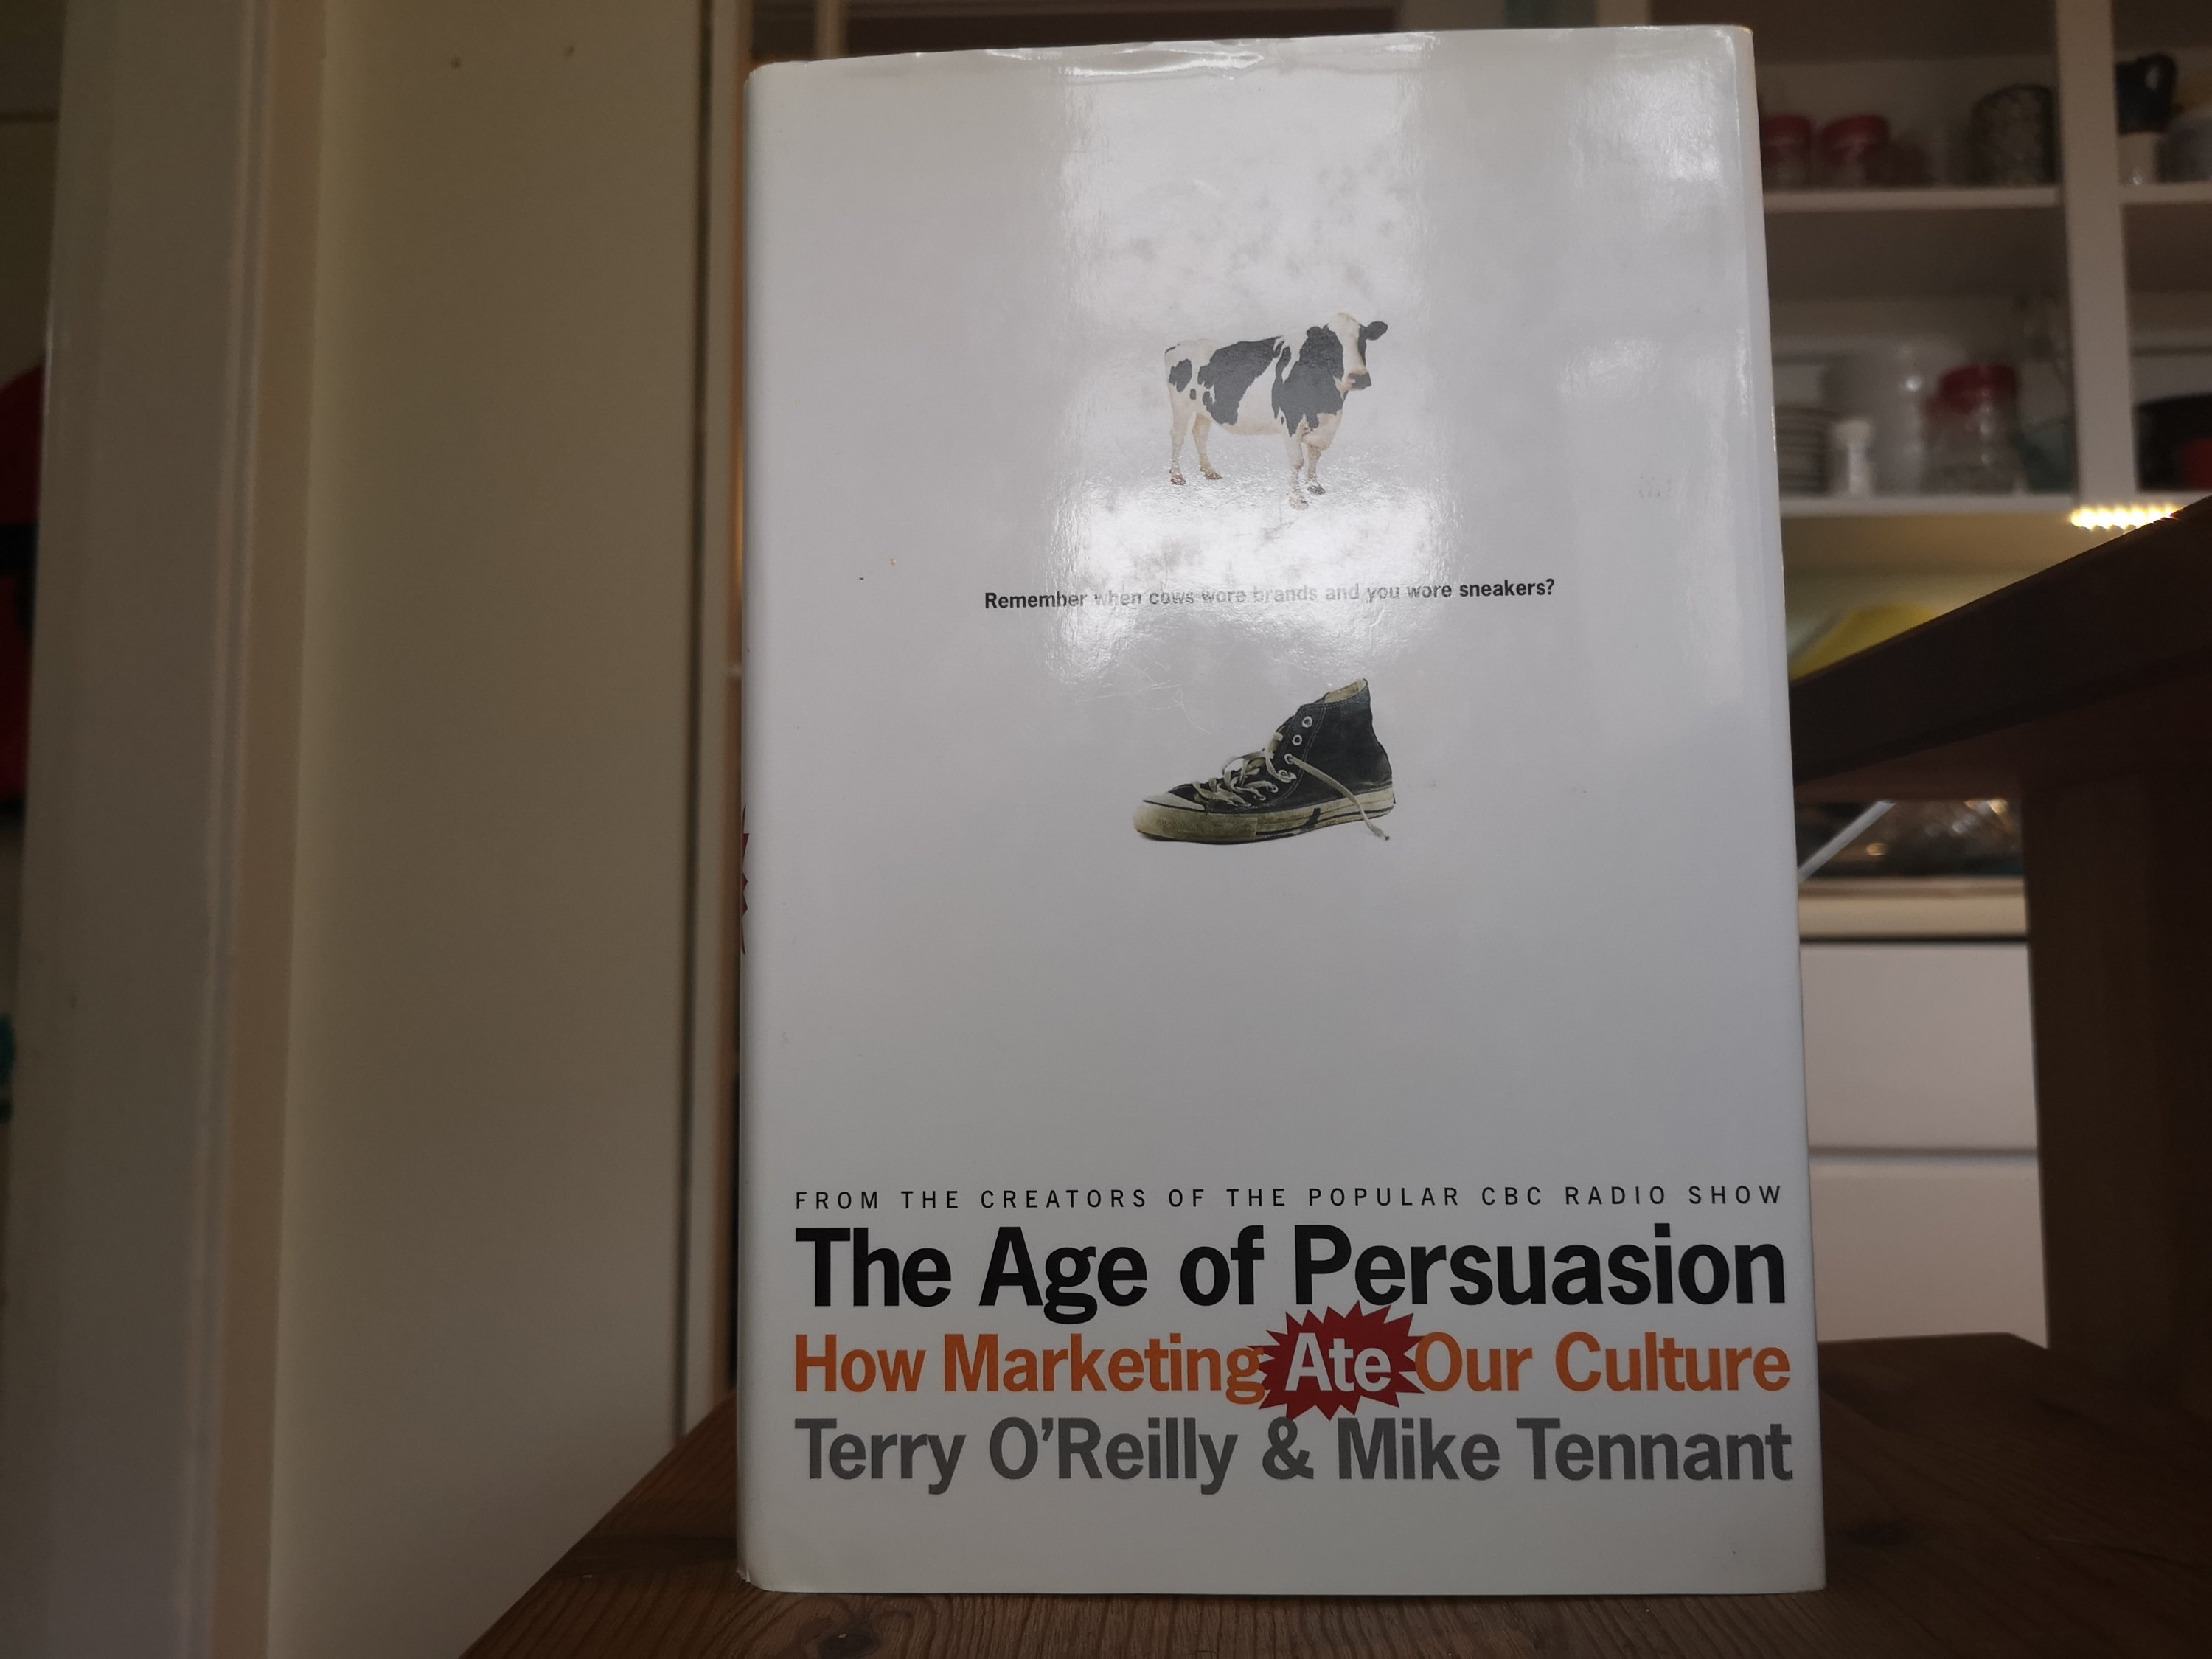 The Age of Persuasion cover.